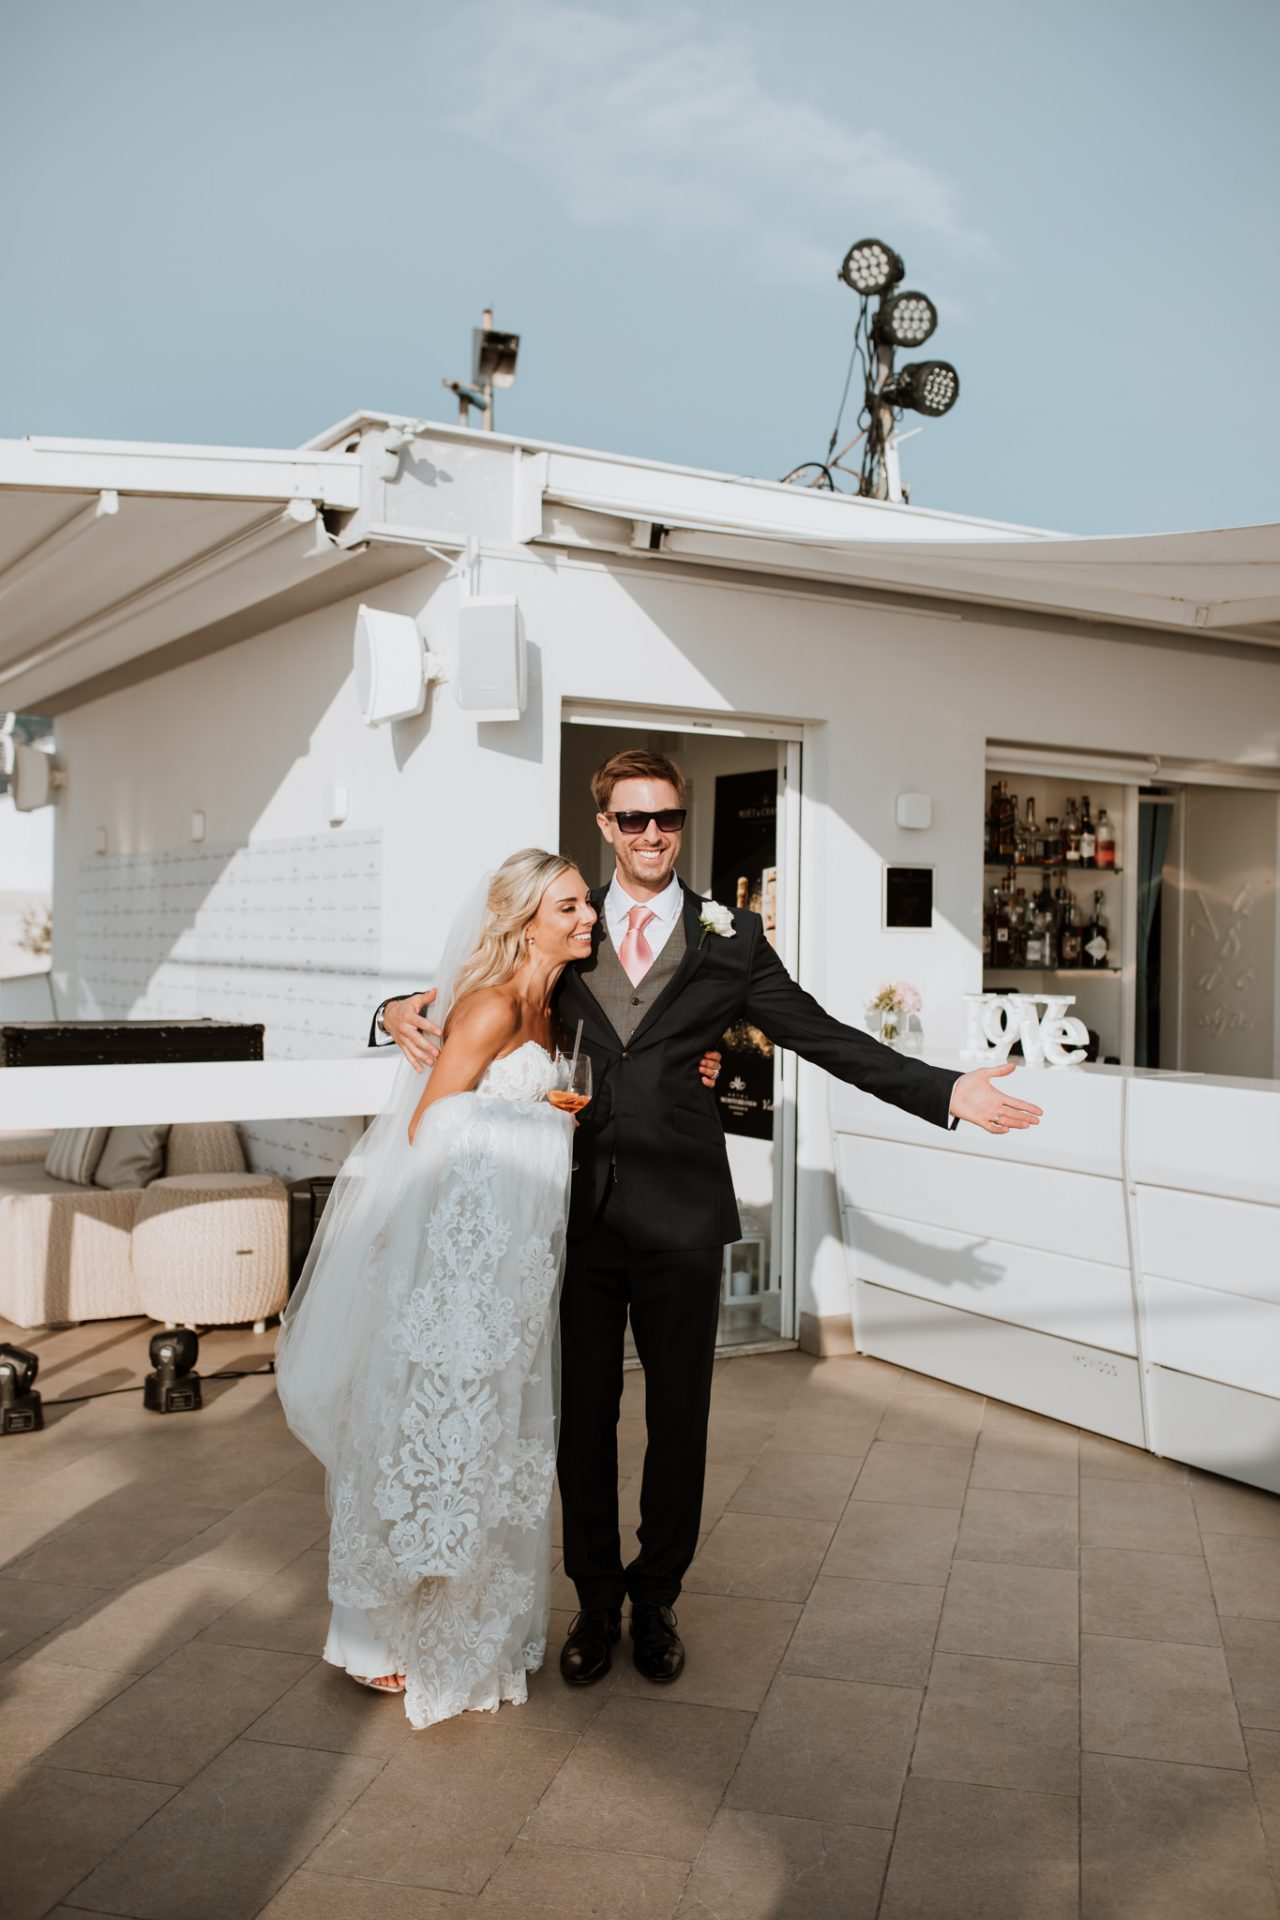 bride and groom's reaction to seeing their wedding breakfast set up